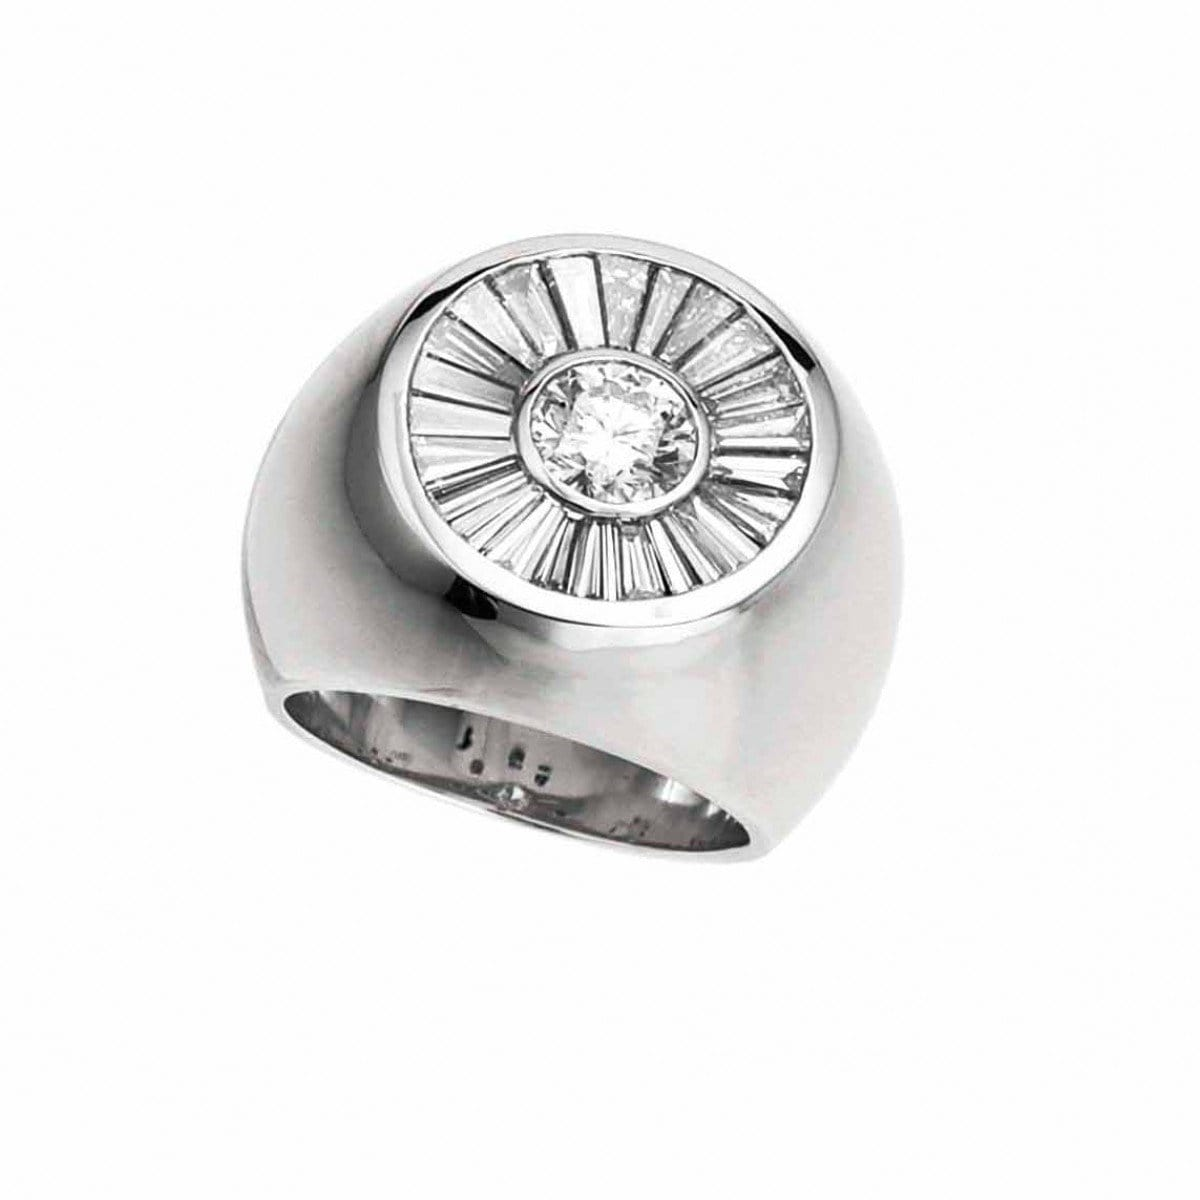 THE EMPEROR DIAMOND RING - Chris Aire Fine Jewelry & Timepieces